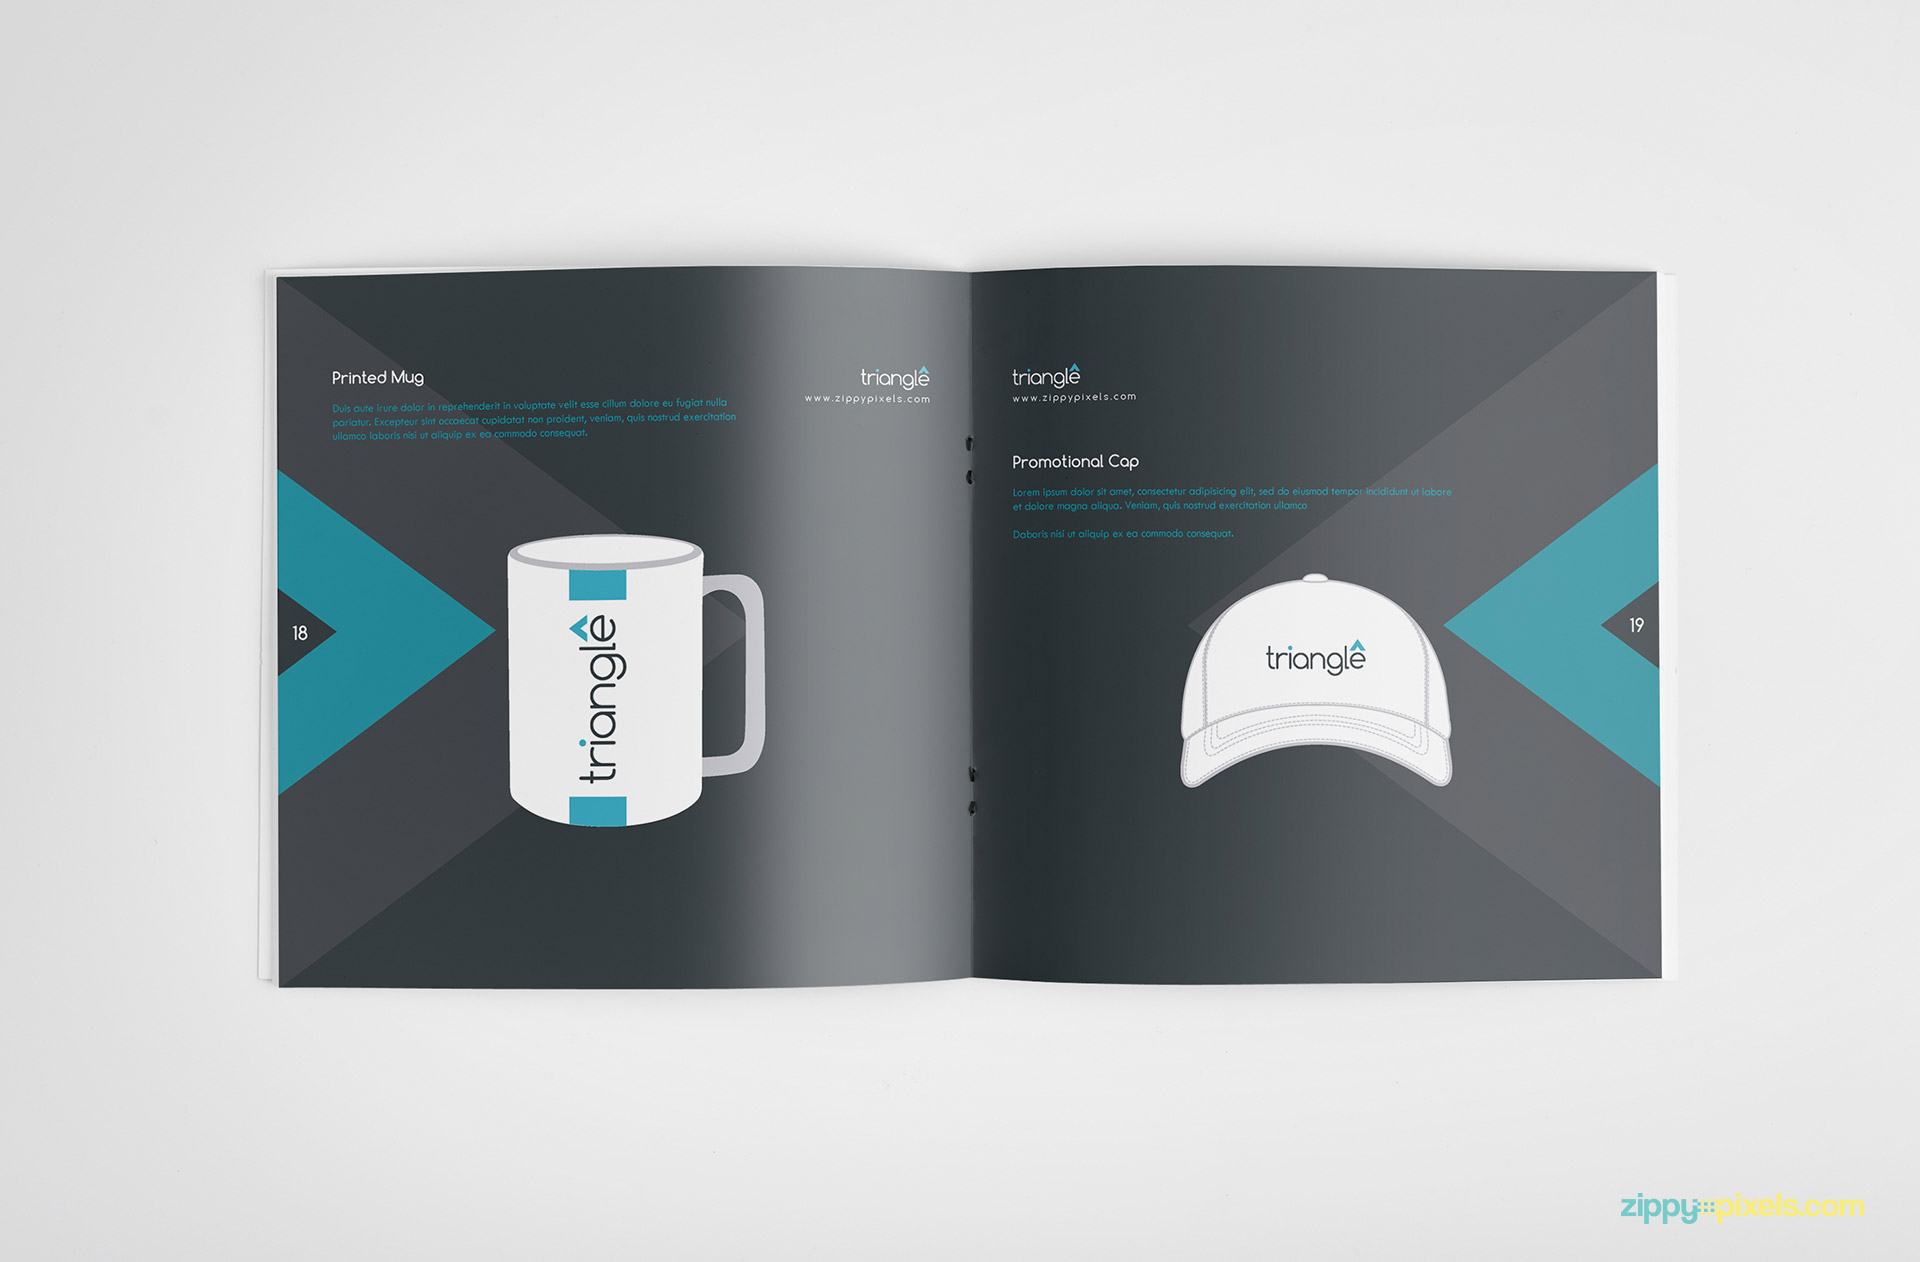 12-brand-book-11-printed-mug-promotional-cap